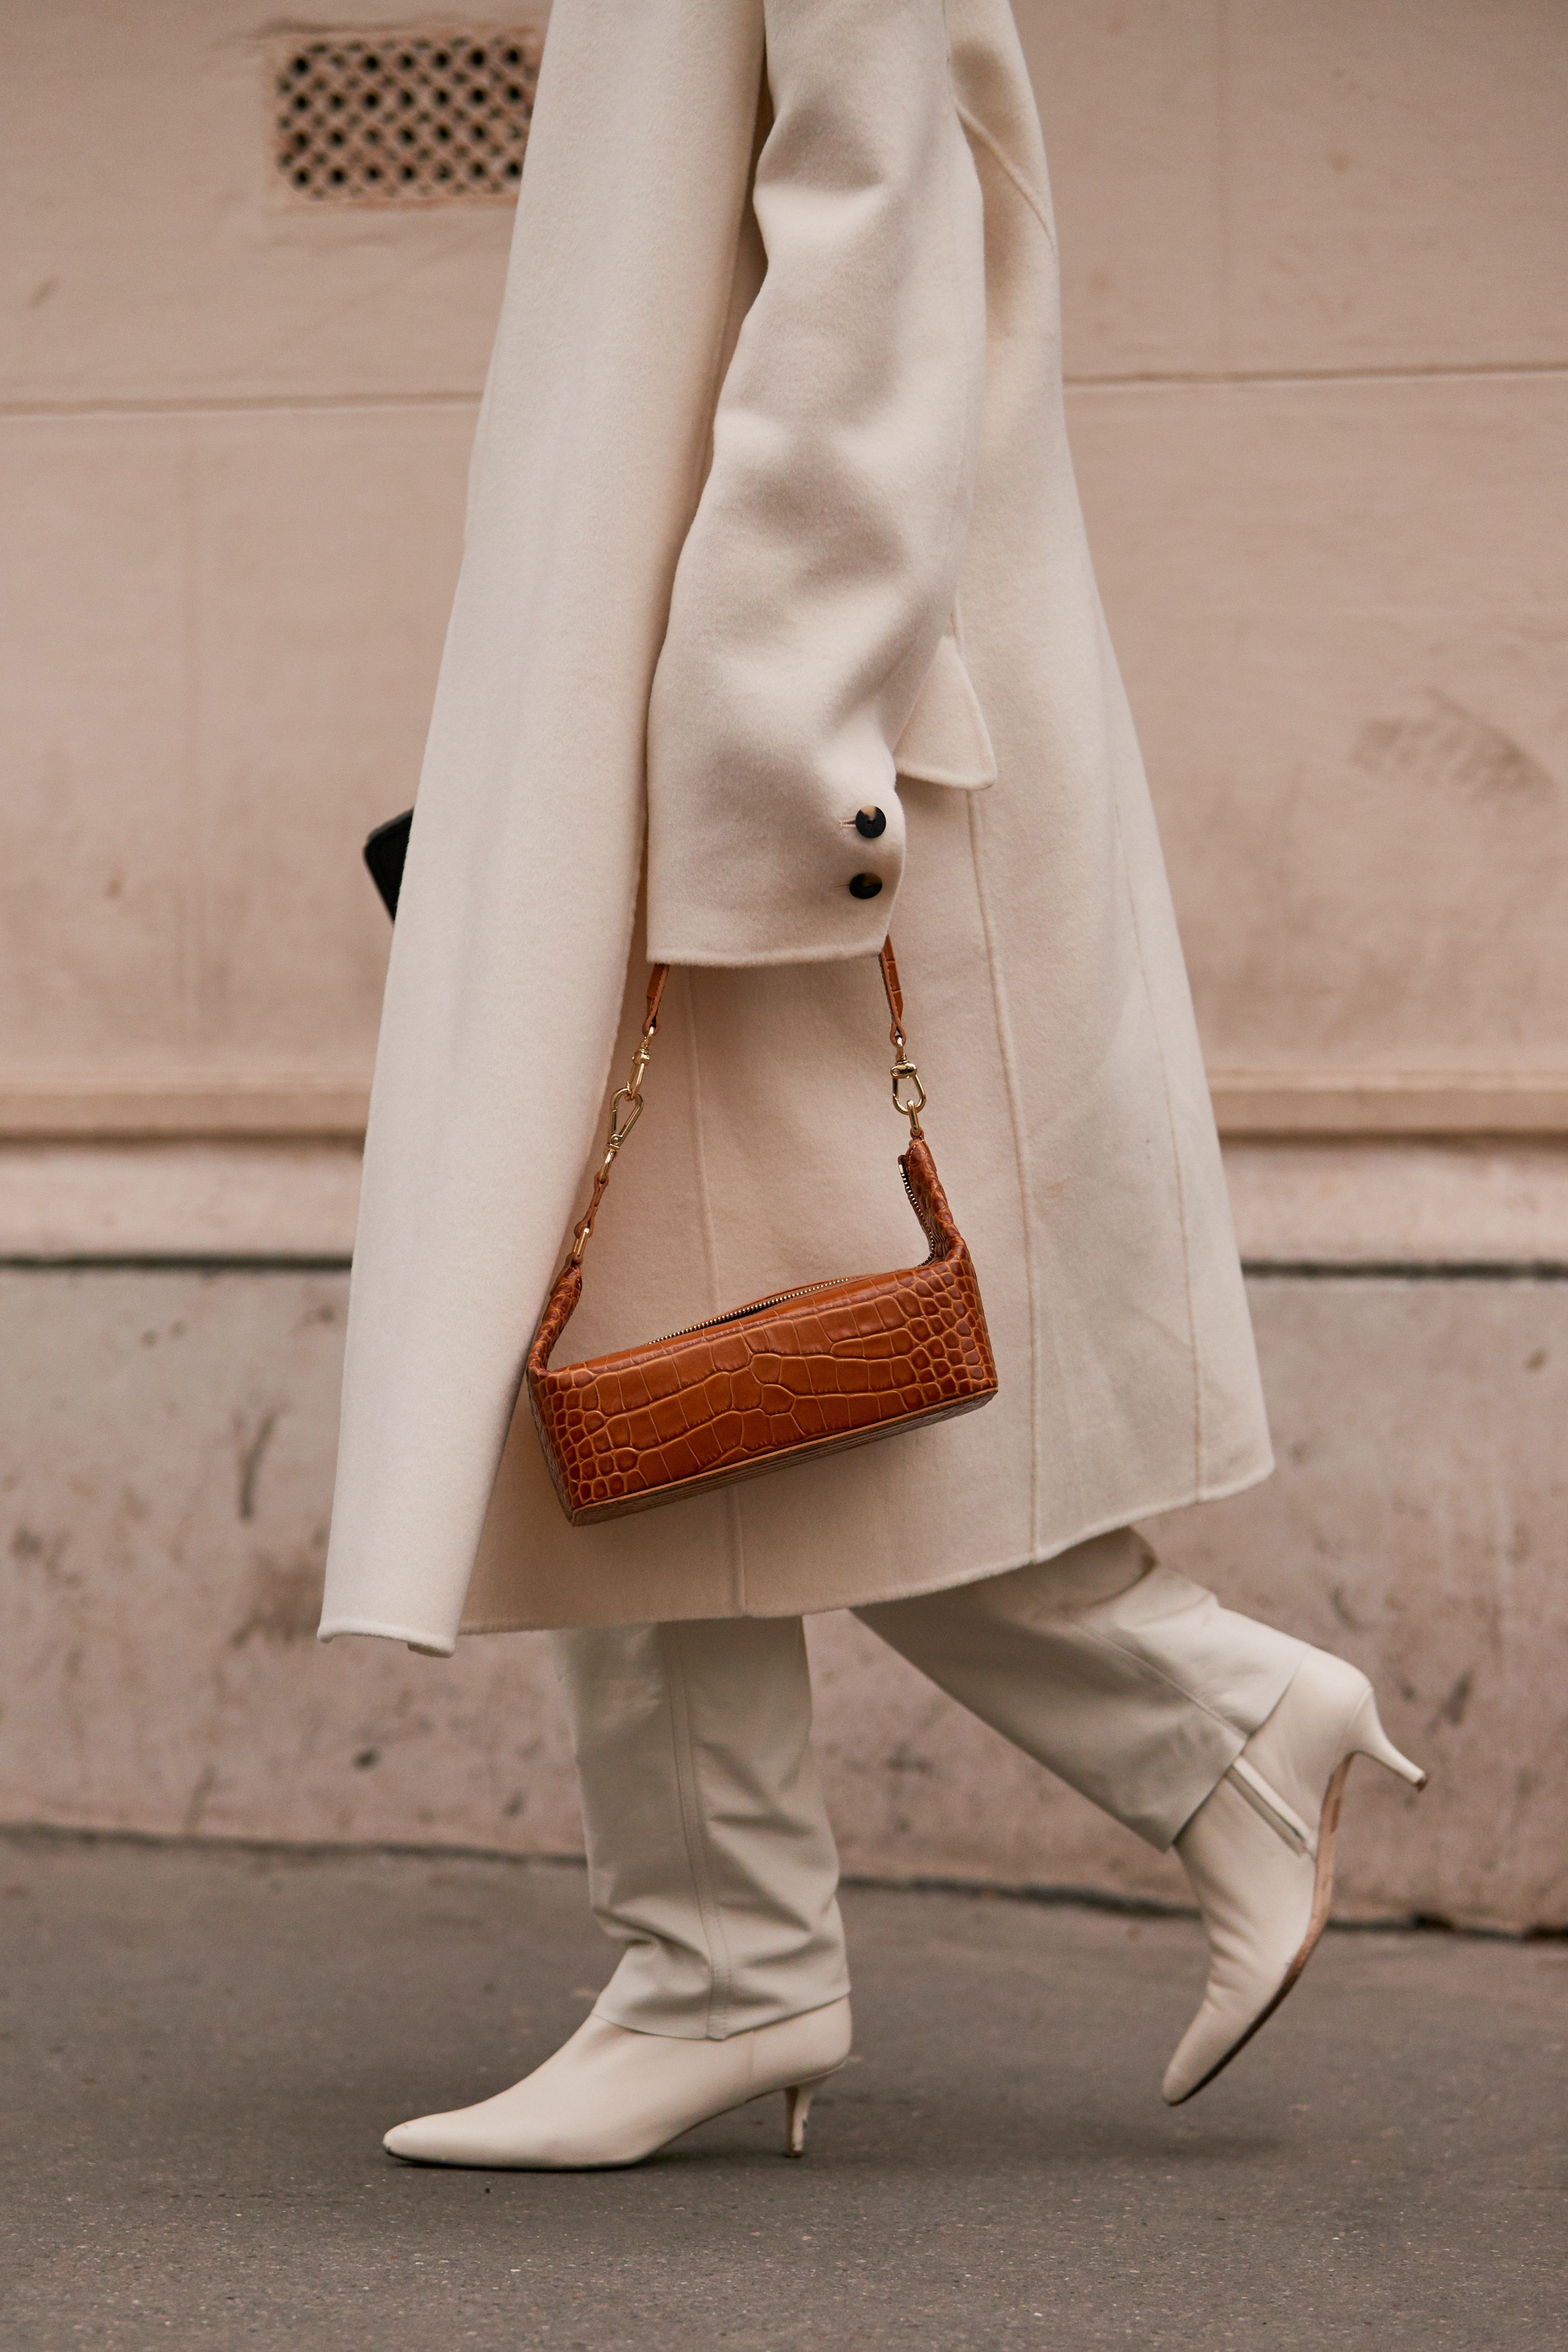 If You Want a Designer It Bag, May We Suggest These 20 on Sale